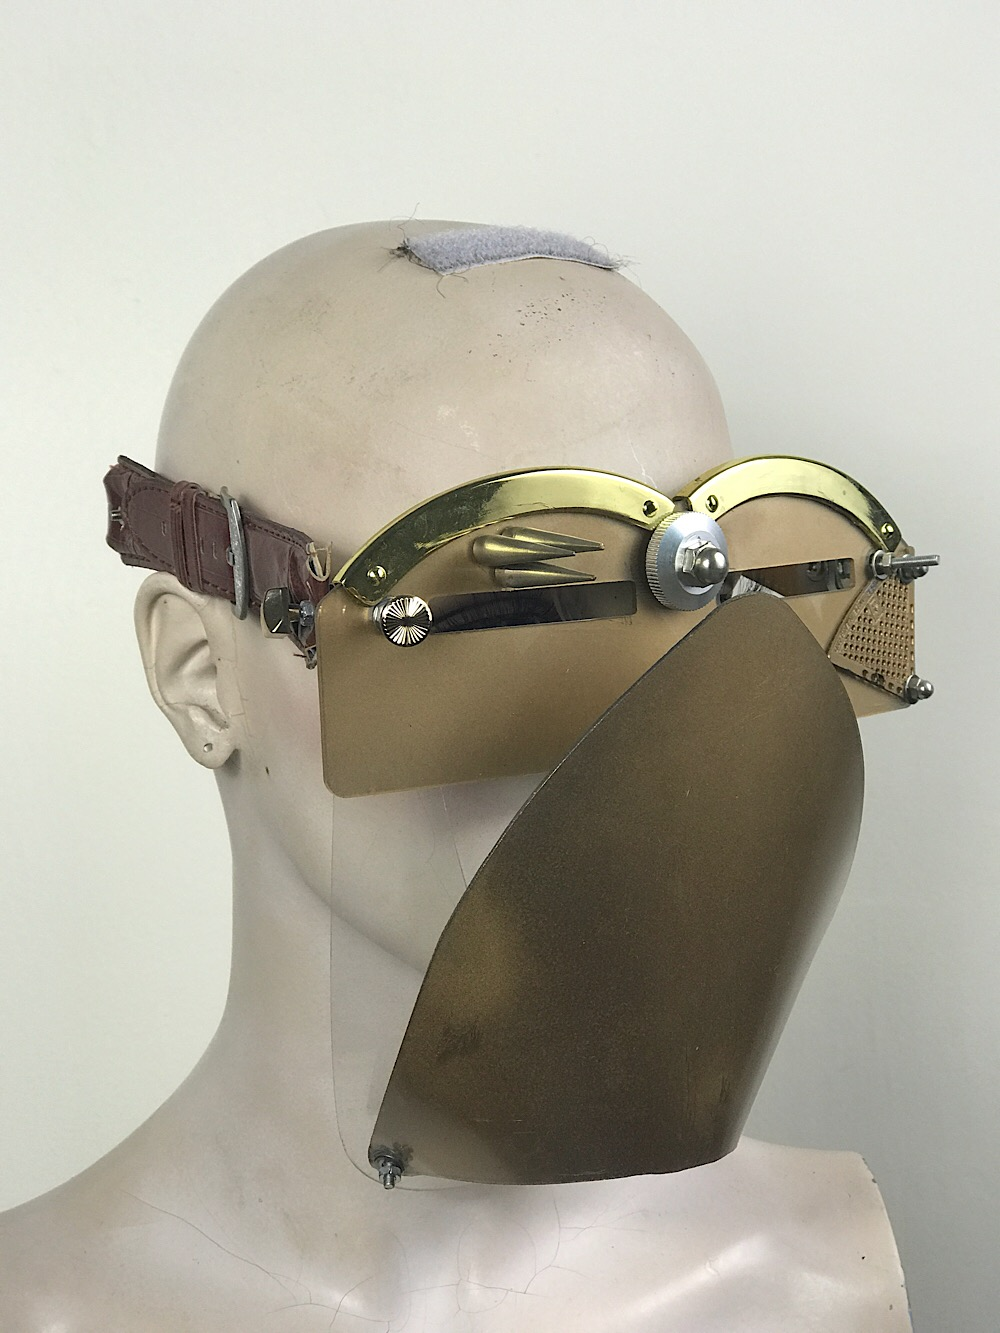 Gold eye wear mask with spikes and muzzle futuristic fantasy  modern steampunk unusual Hi Tek